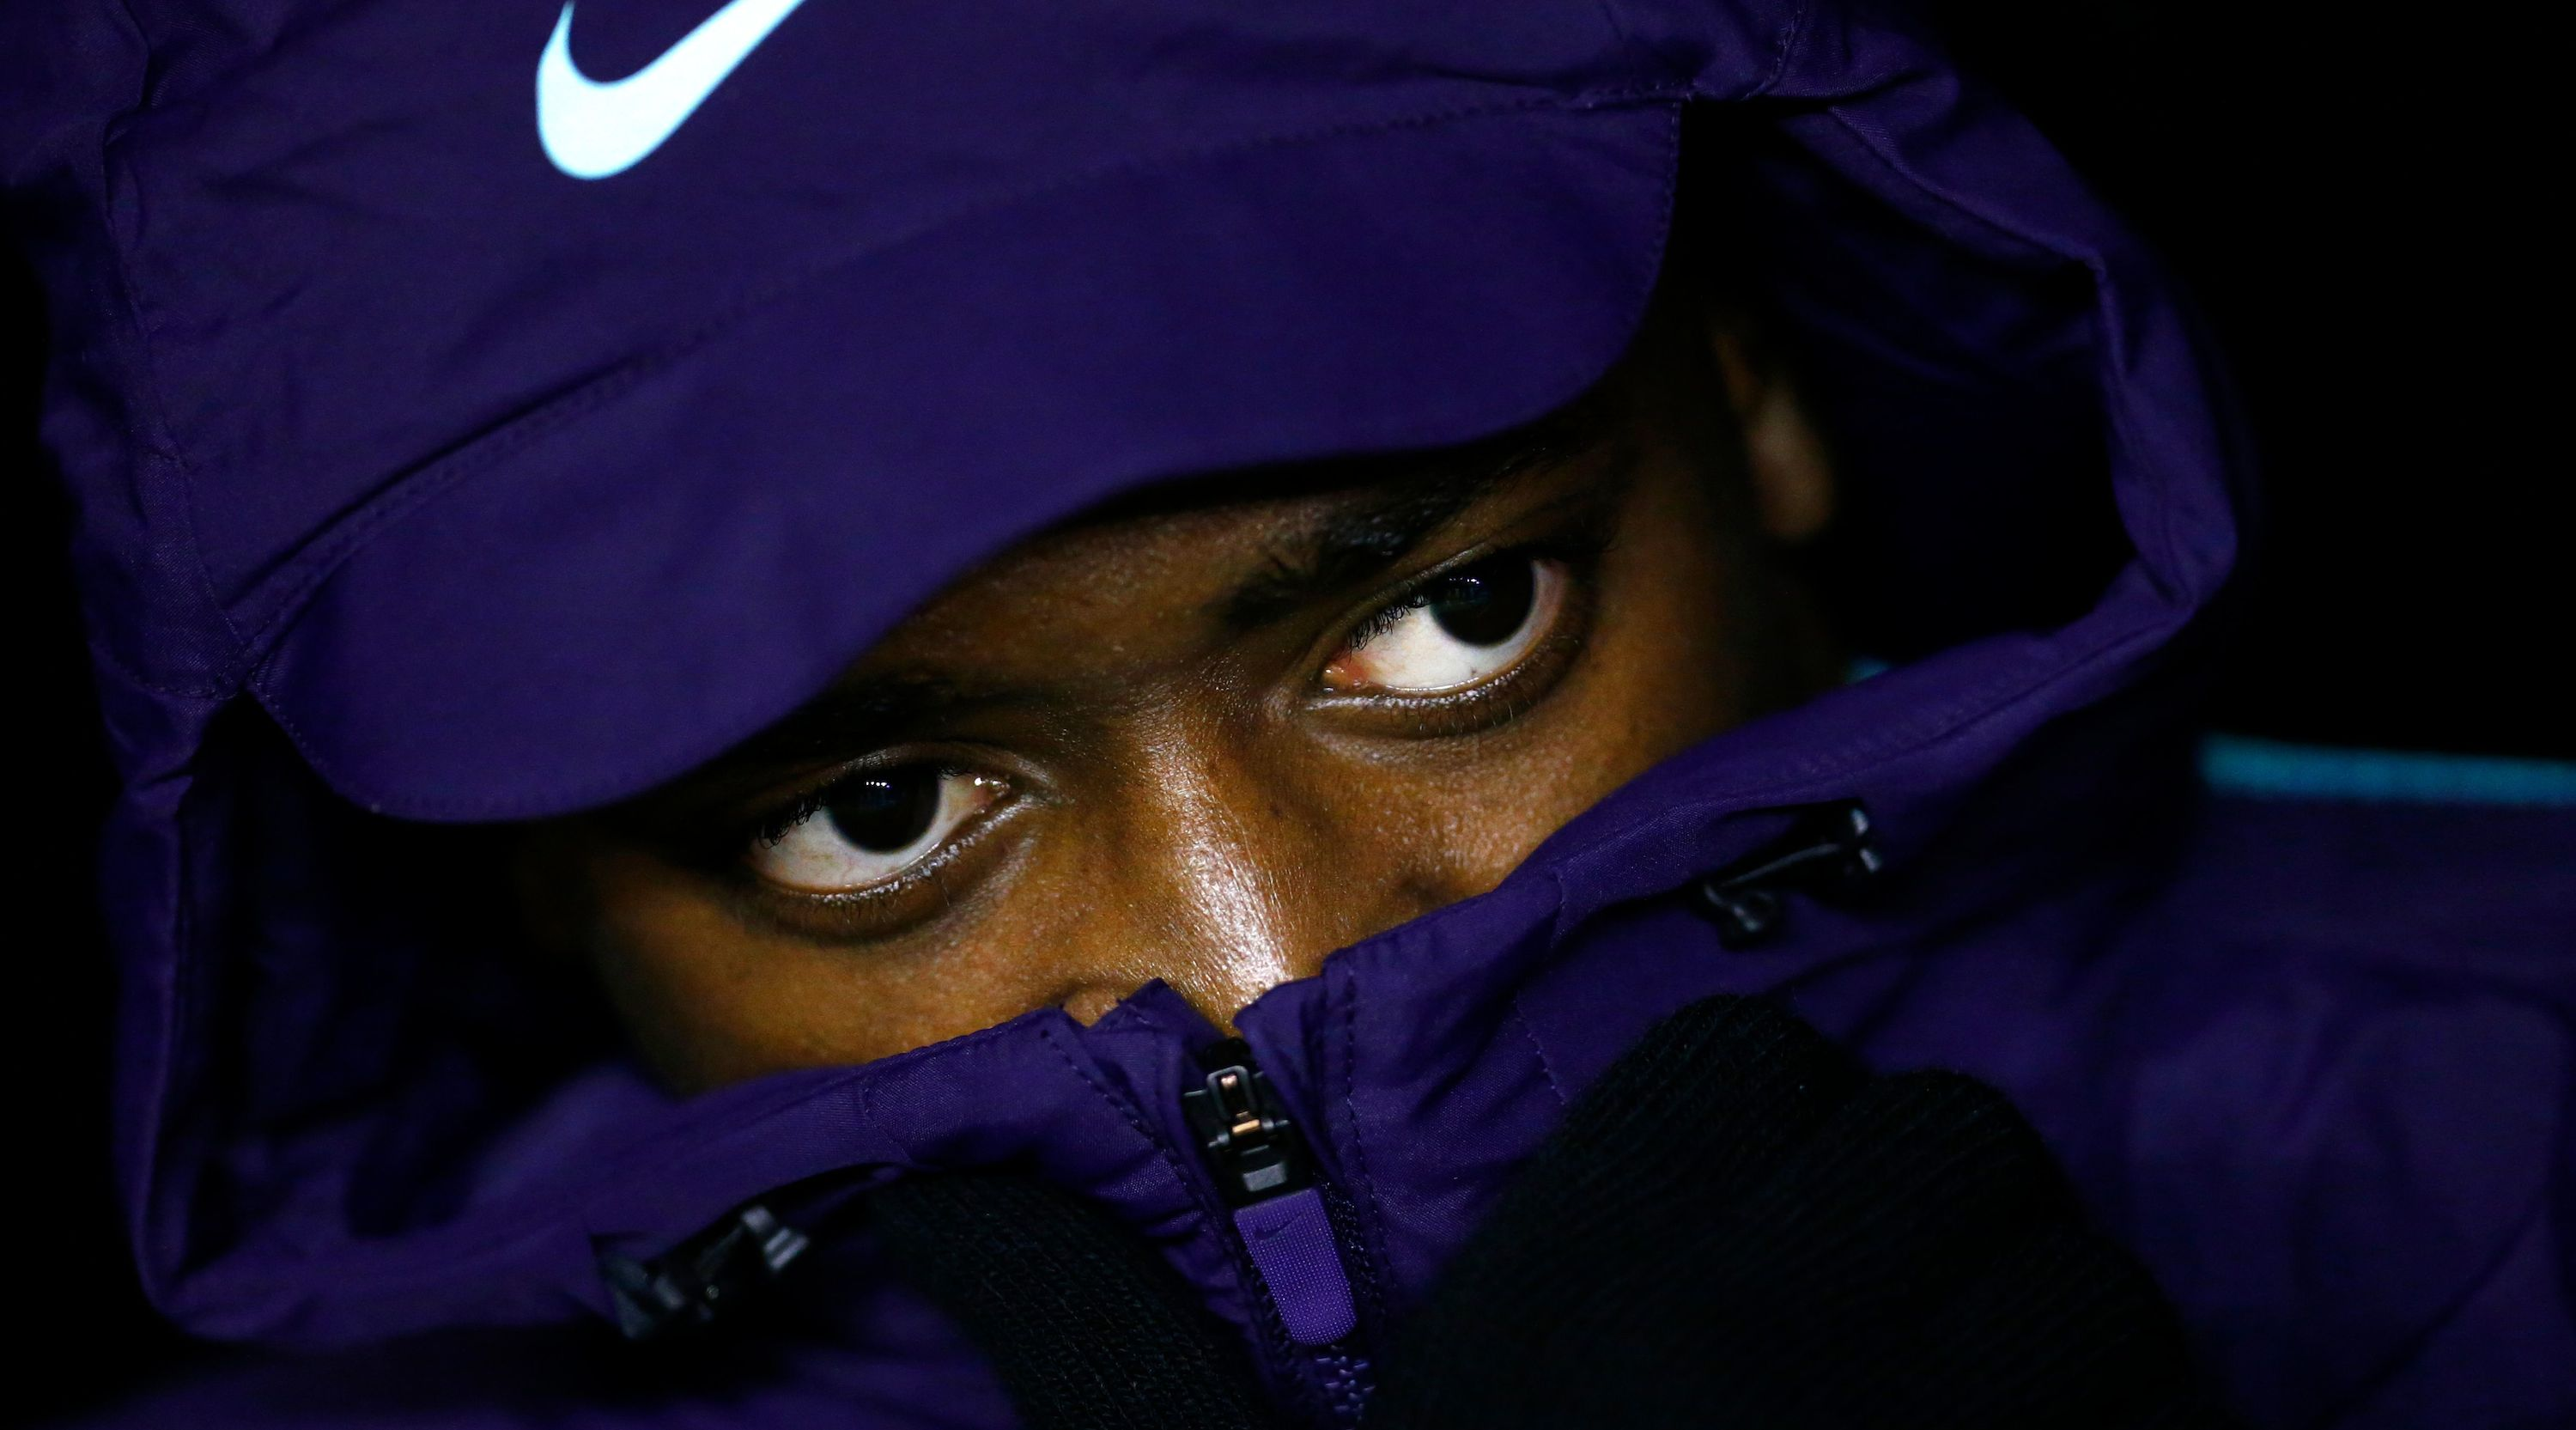 Barcelona's French forward Ousmane Dembele sits on the bench during the Spanish league football match between Rayo Vallecano de Madrid and FC Barcelona at the Vallecas stadium in Madrid on November 3, 2018. (Photo by BENJAMIN CREMEL / AFP) (Photo credit should read BENJAMIN CREMEL/AFP/Getty Images)